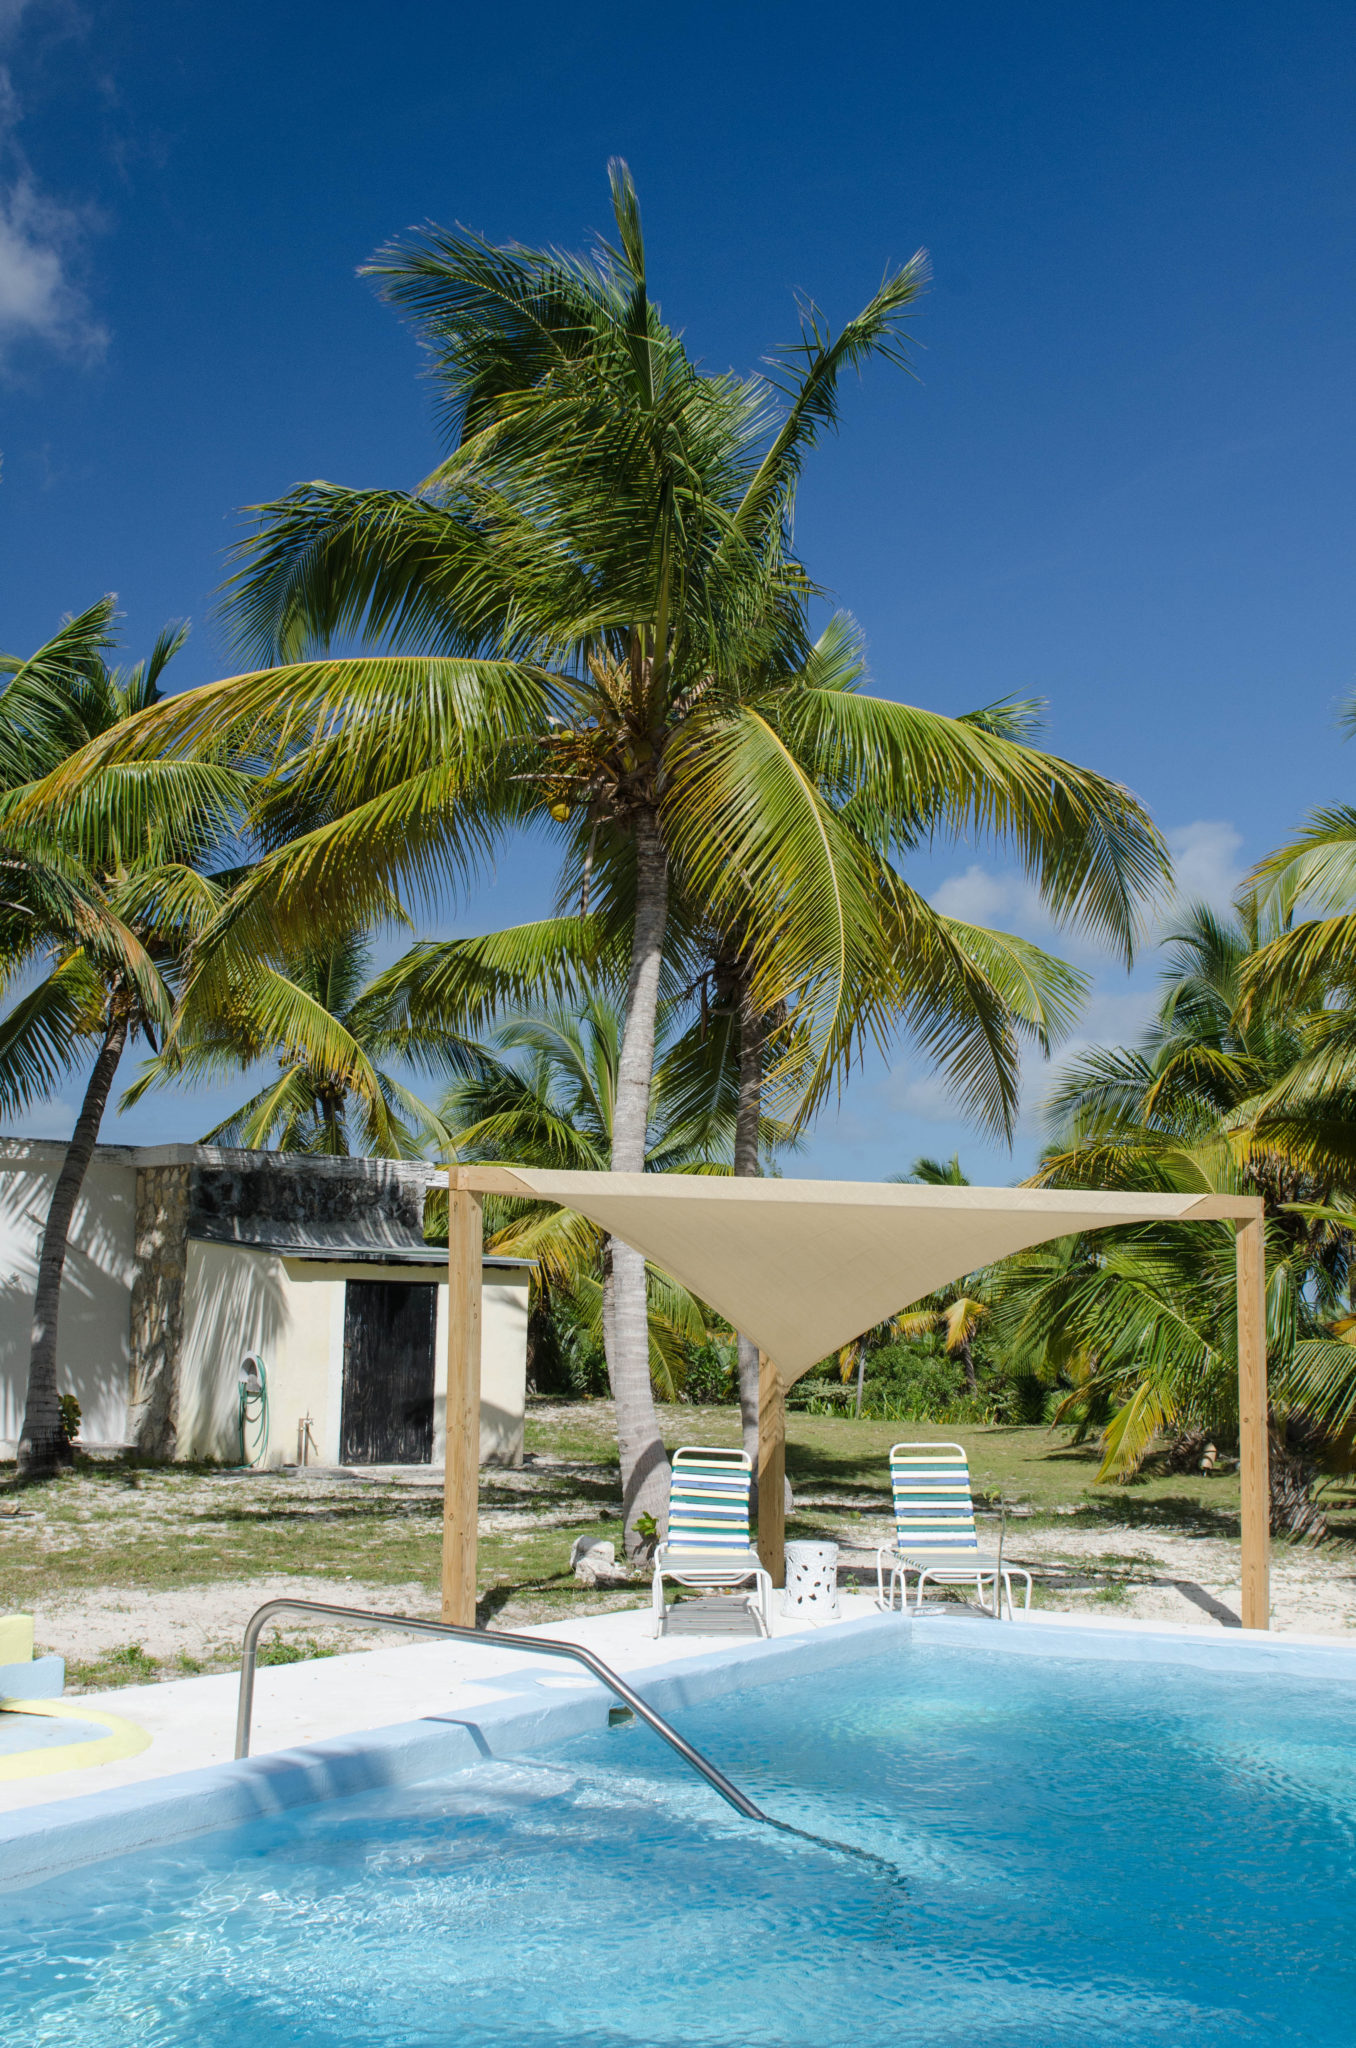 Greenwood Beach Resort: Hotel Bahamas Tipp